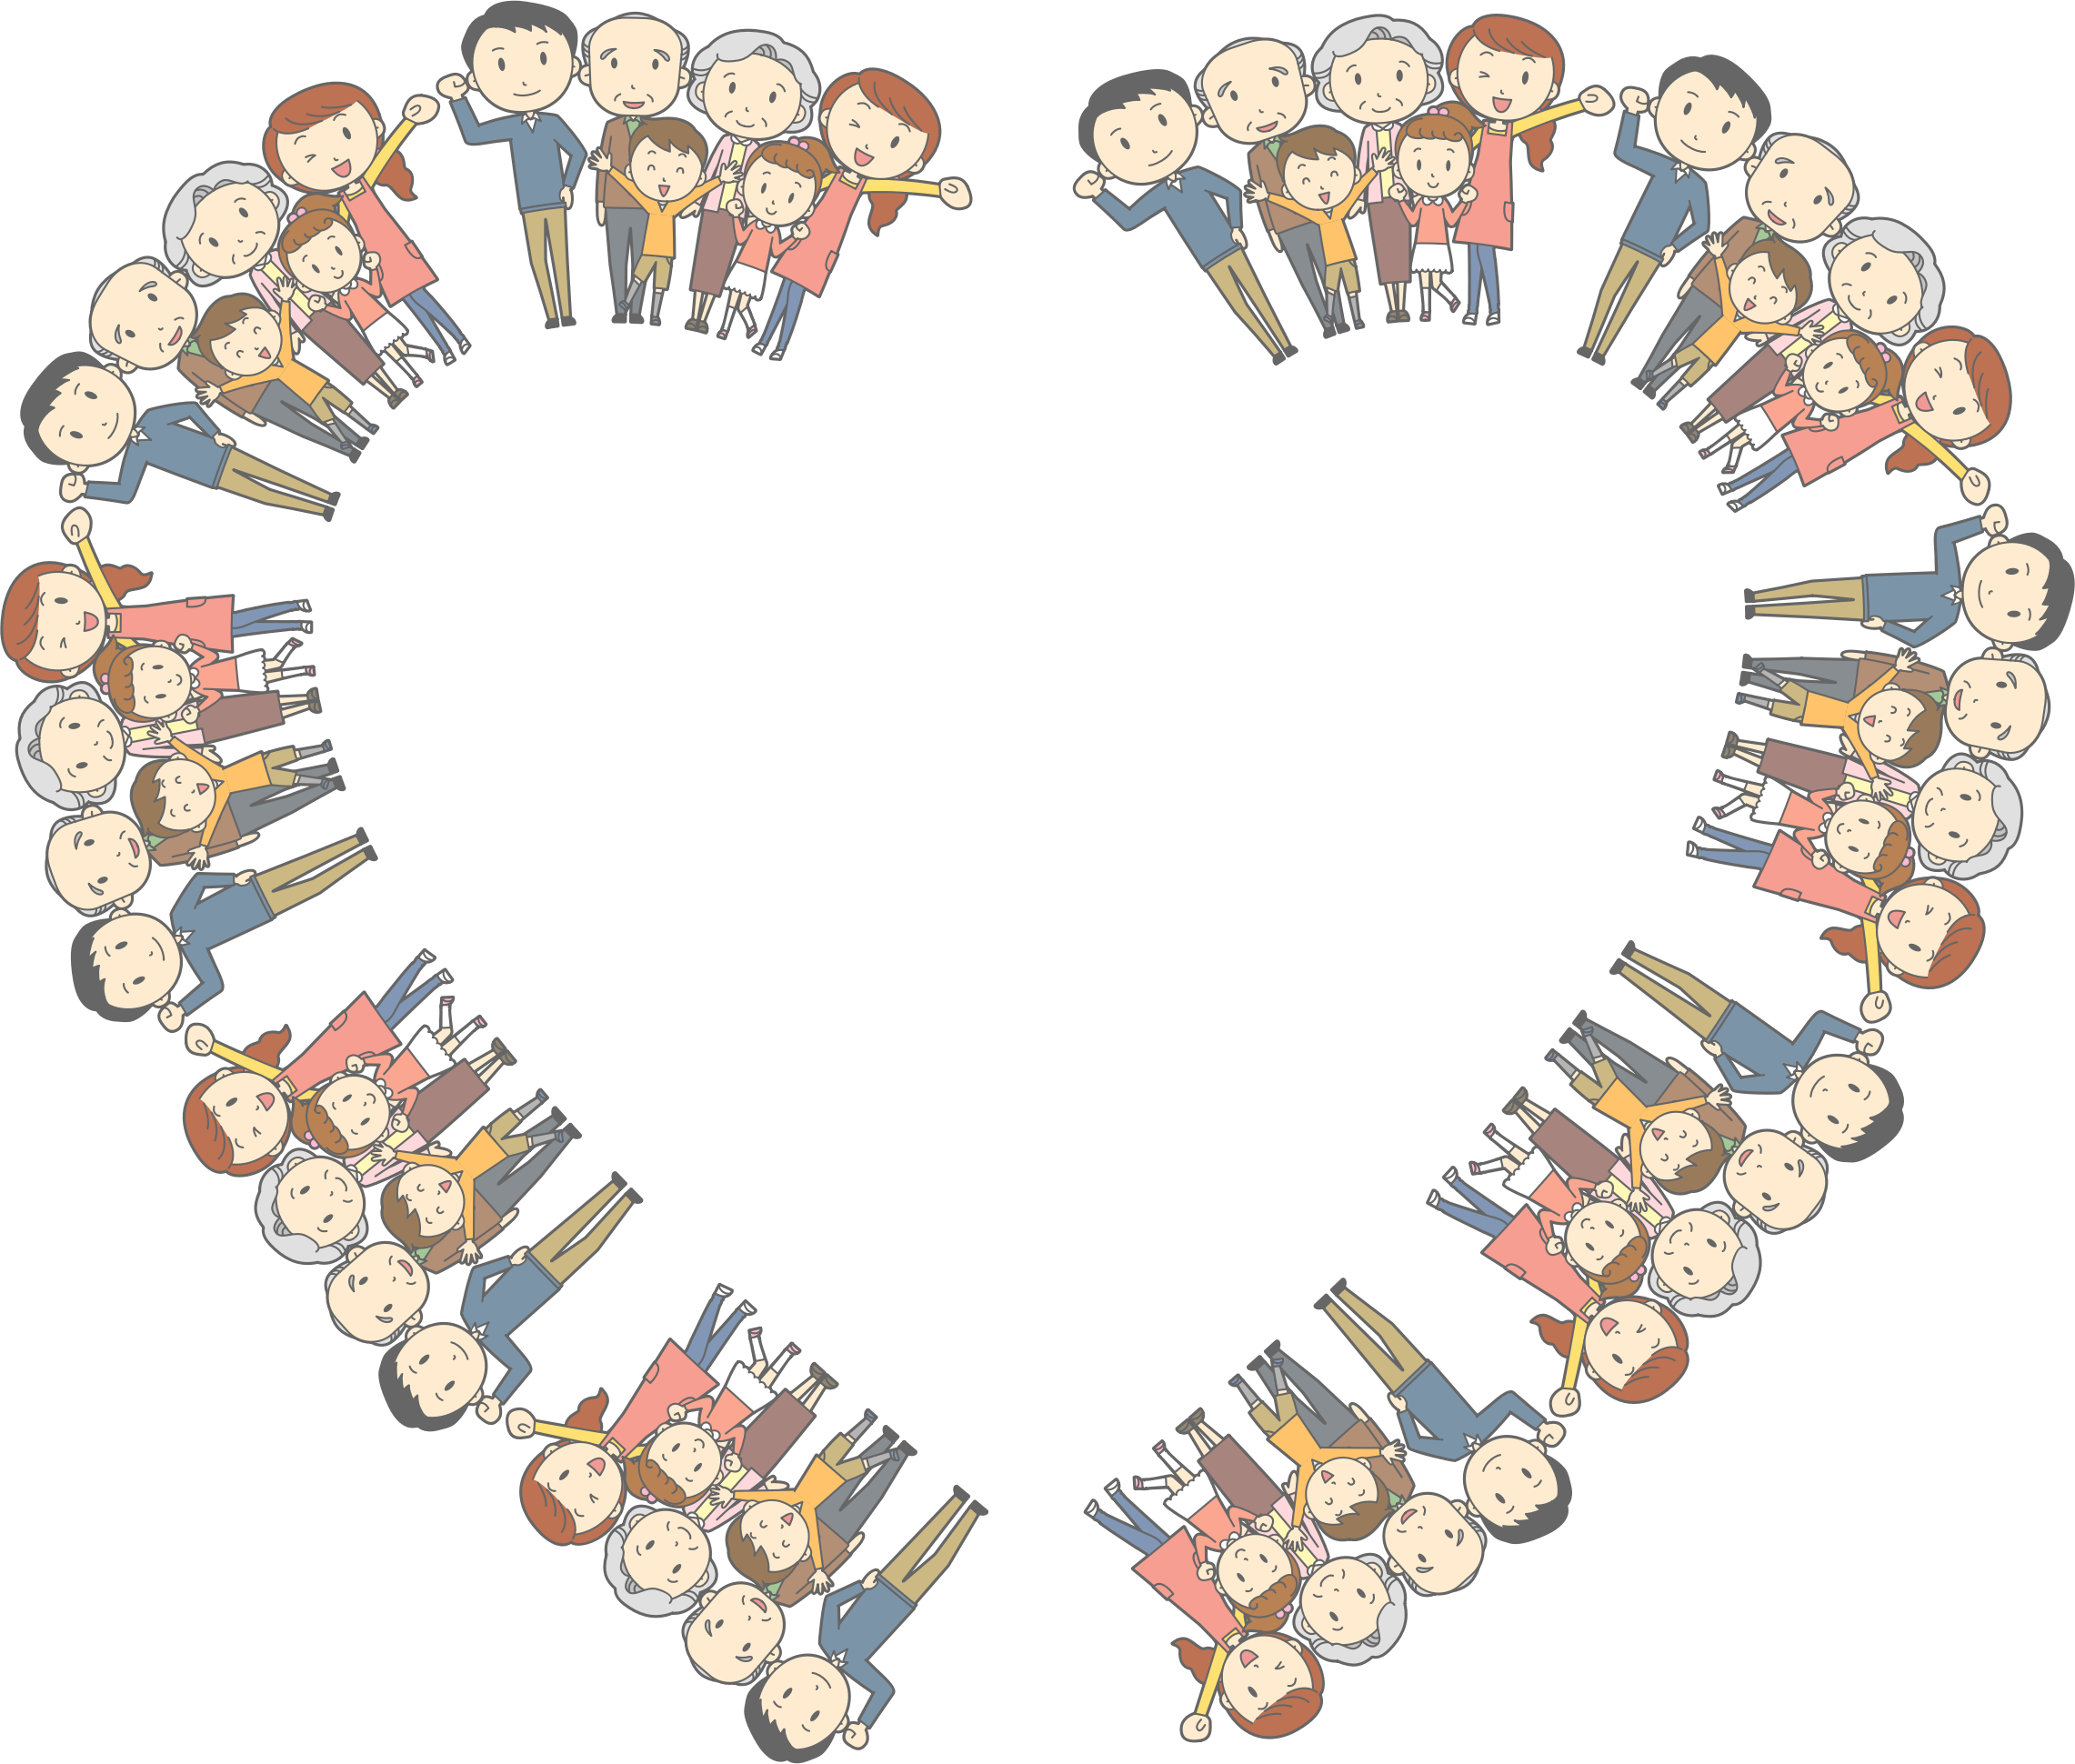 MultiGenerational Family Heart Frame by GDJ